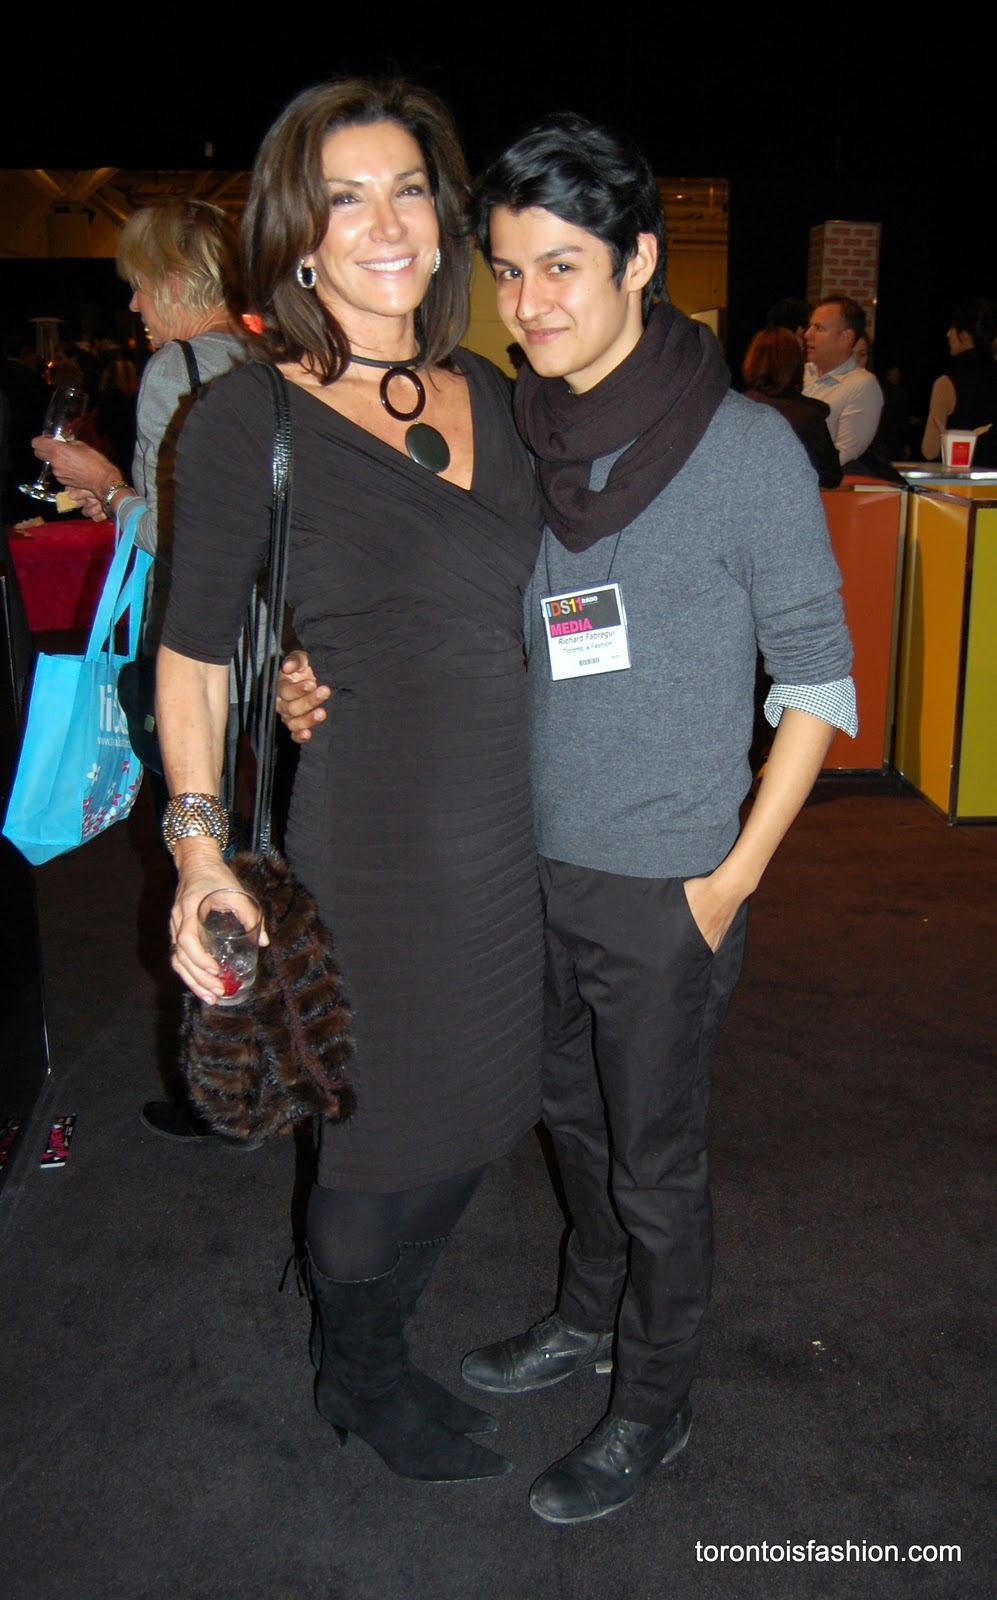 ... Is Hilary Farr Married To http://jumpei-mitsui.com/aboutme/hilary-farr